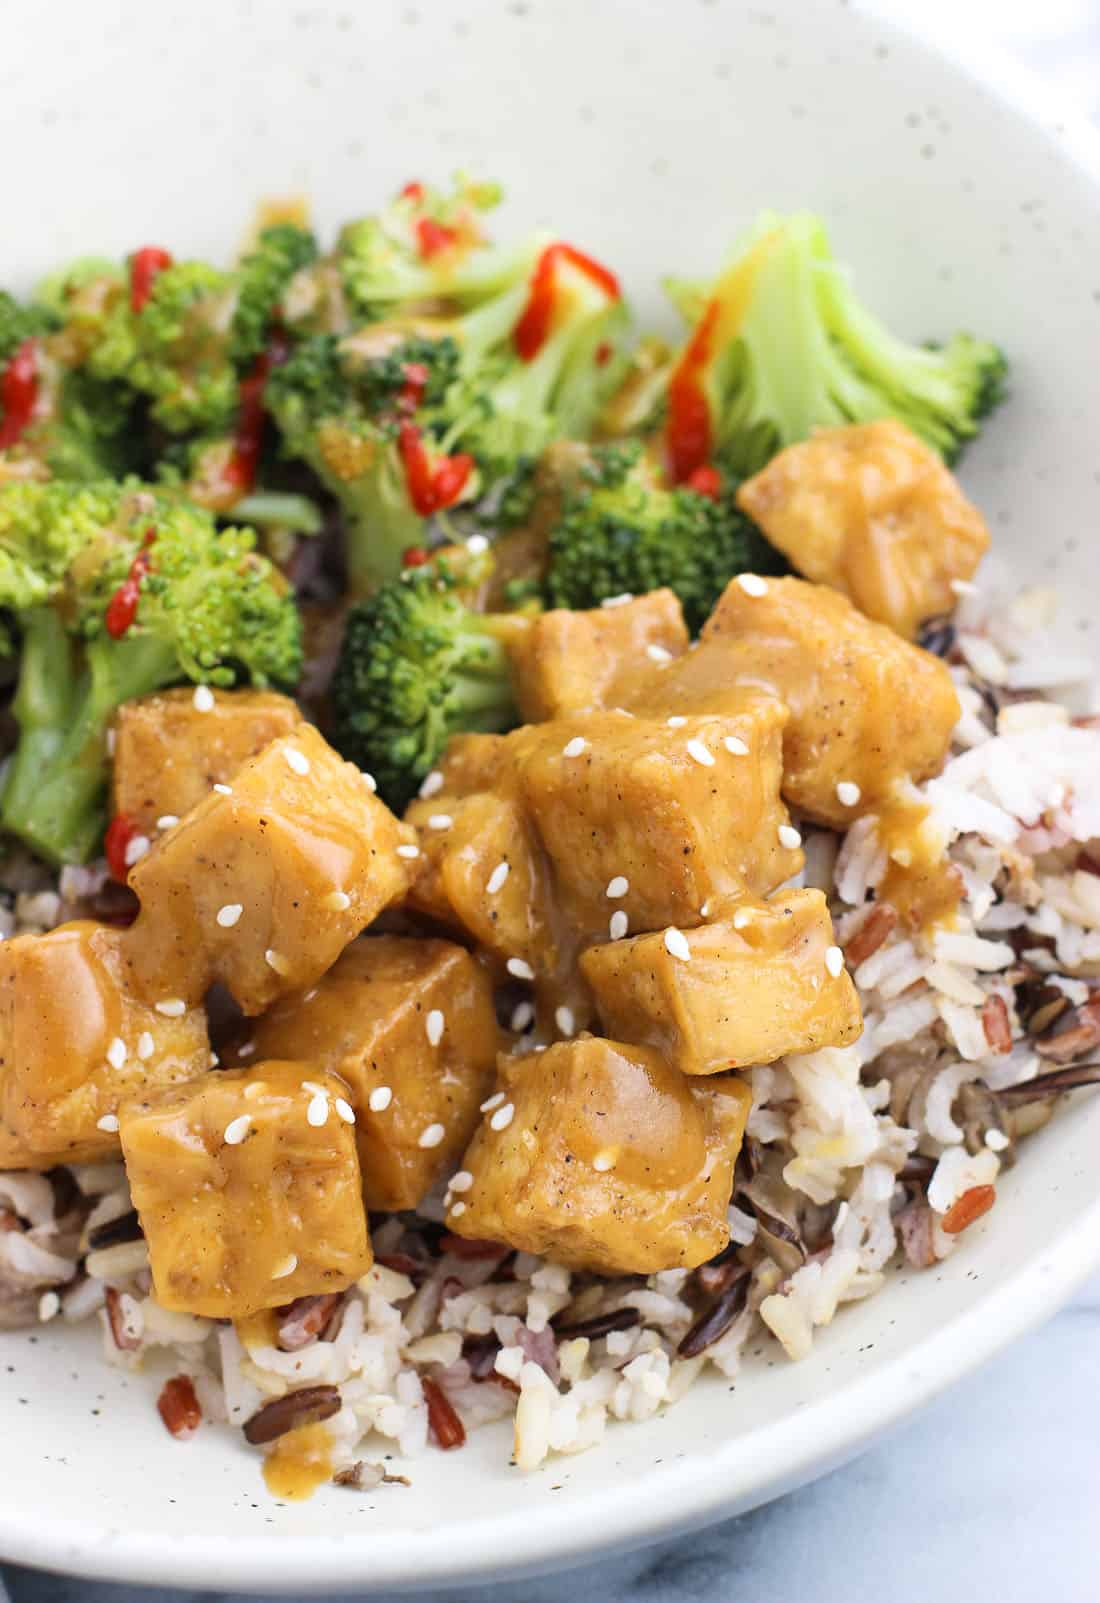 Oven fried tofu with spicy ginger sauce is a healthy vegetarian dinner recipe that's better for you than take-out! The thick and creamy sauce is formed by reducing vegetable stock, and coats the hearty tofu pieces beautifully. Serve alongside broccoli and rice for a complete meal.